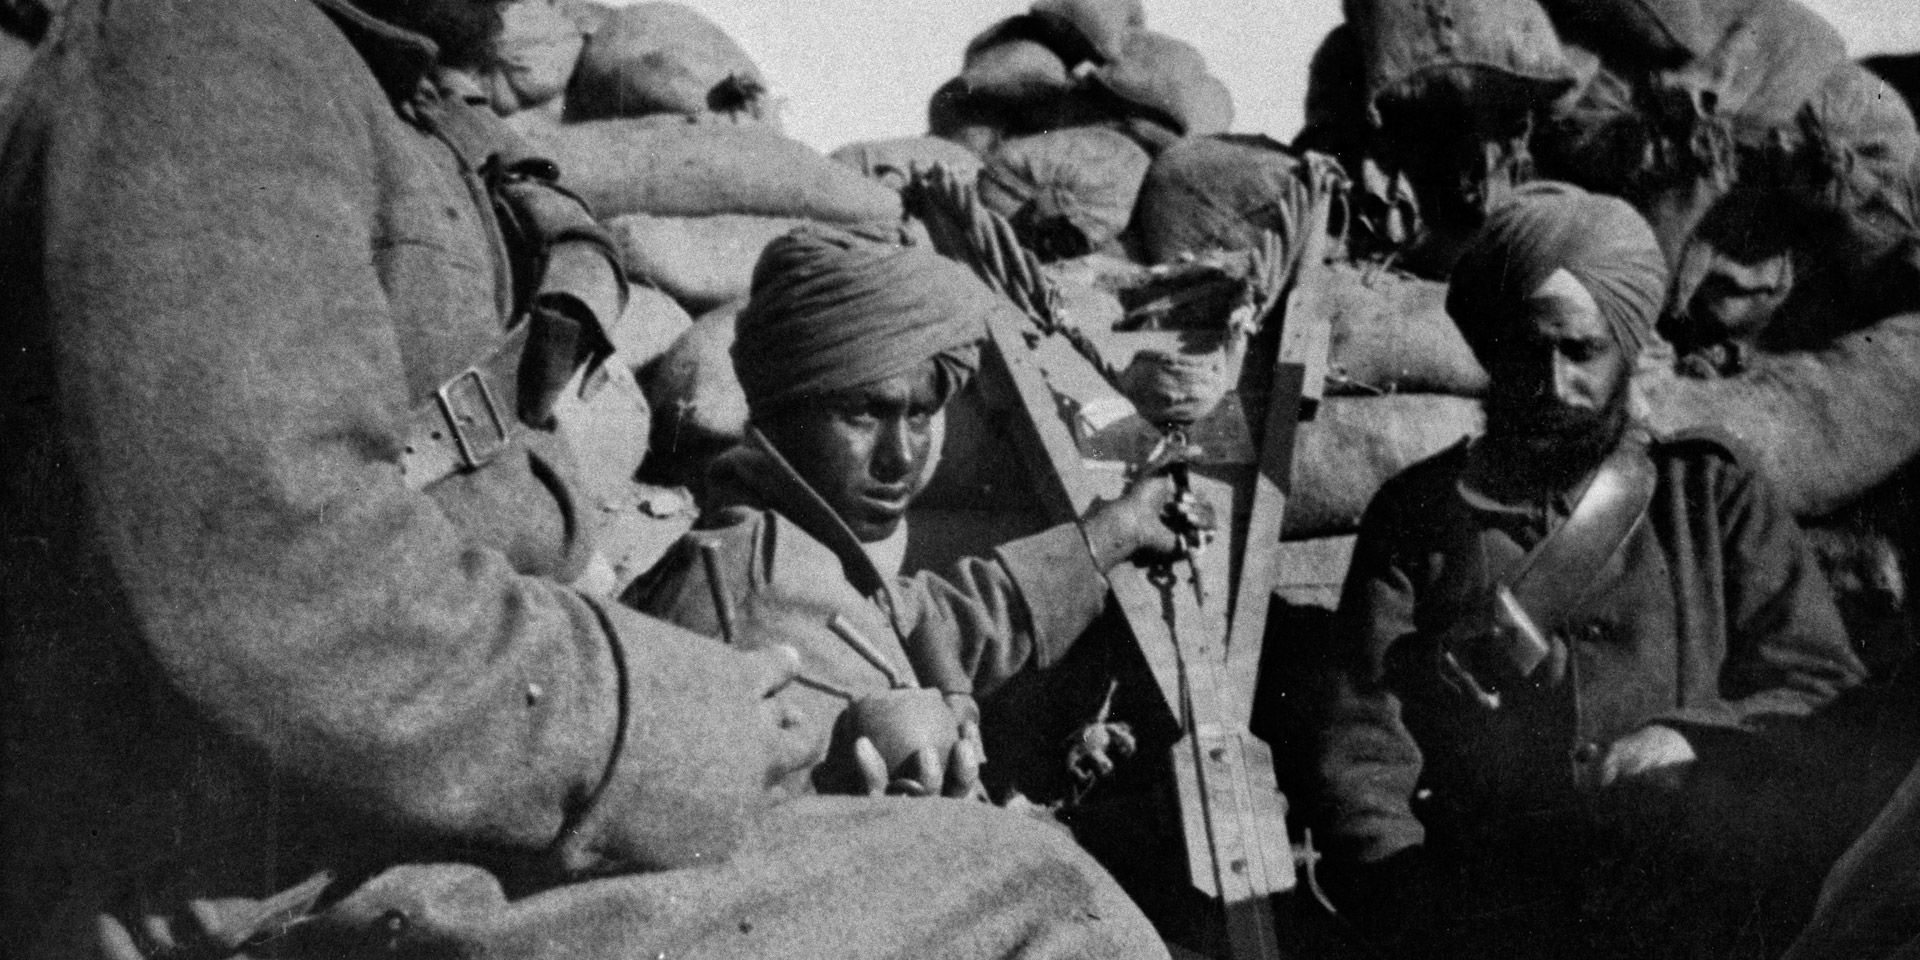 Troops of 29th Indian Infantry Brigade in the Trenches, Gallipoli, 1915